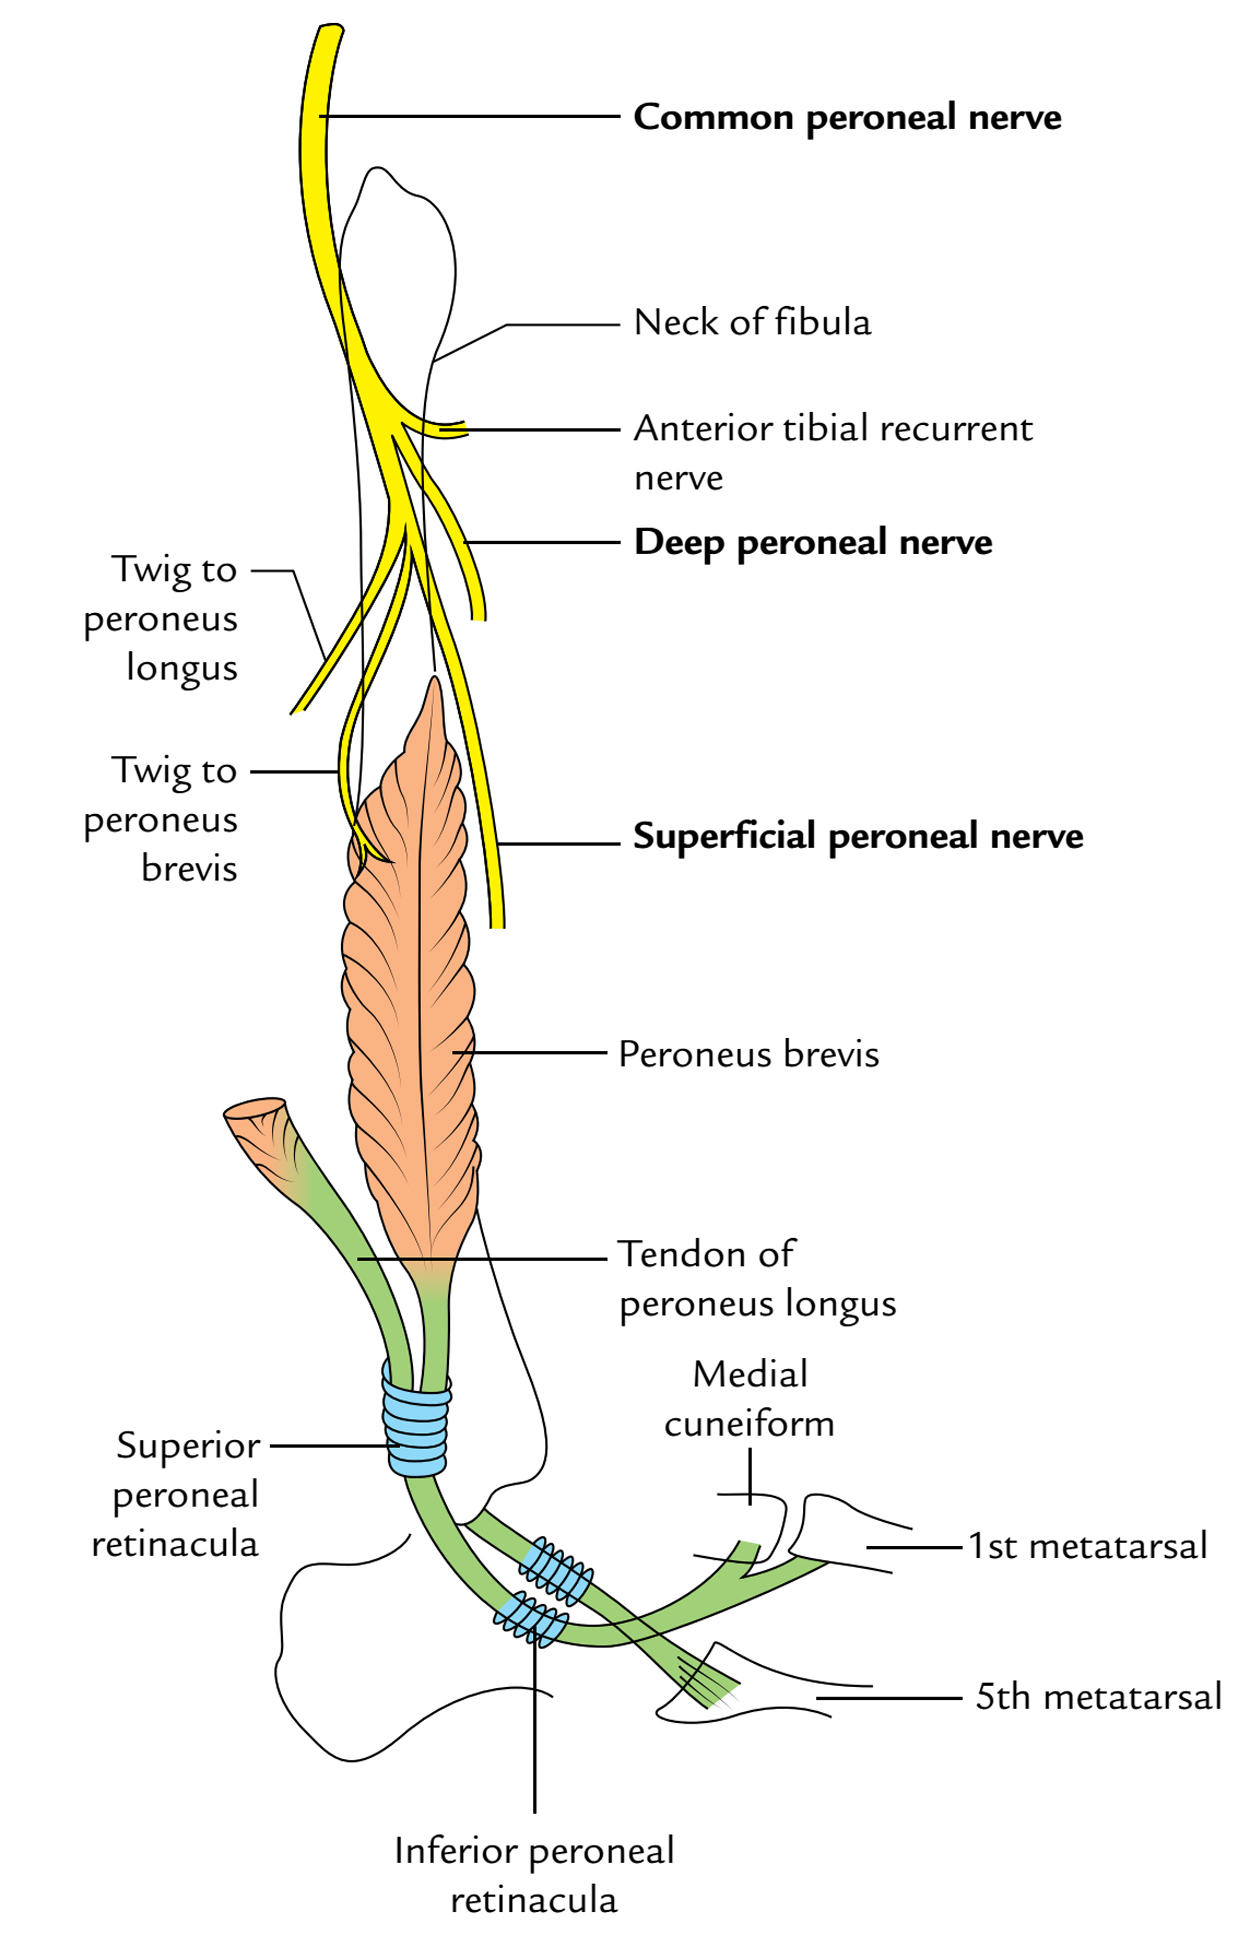 Superficial Peroneal Nerve: Course and Relation